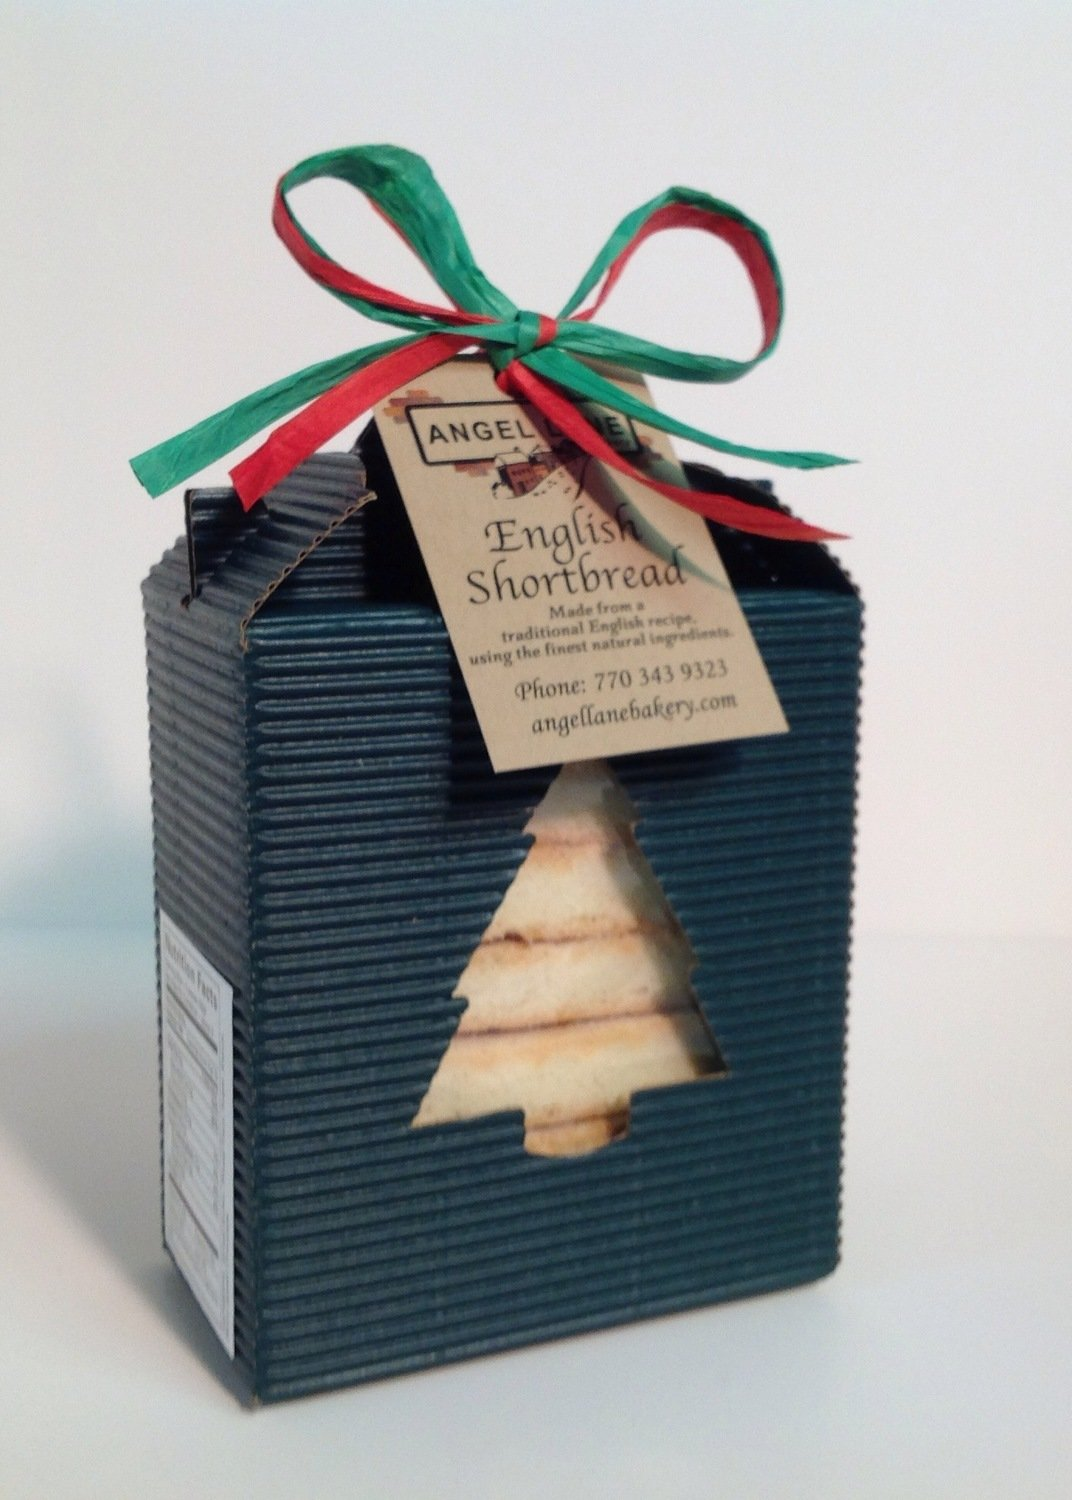 Christmas Special - Ideal for Friends, Teachers, Family - 12 Scrumptious Slices